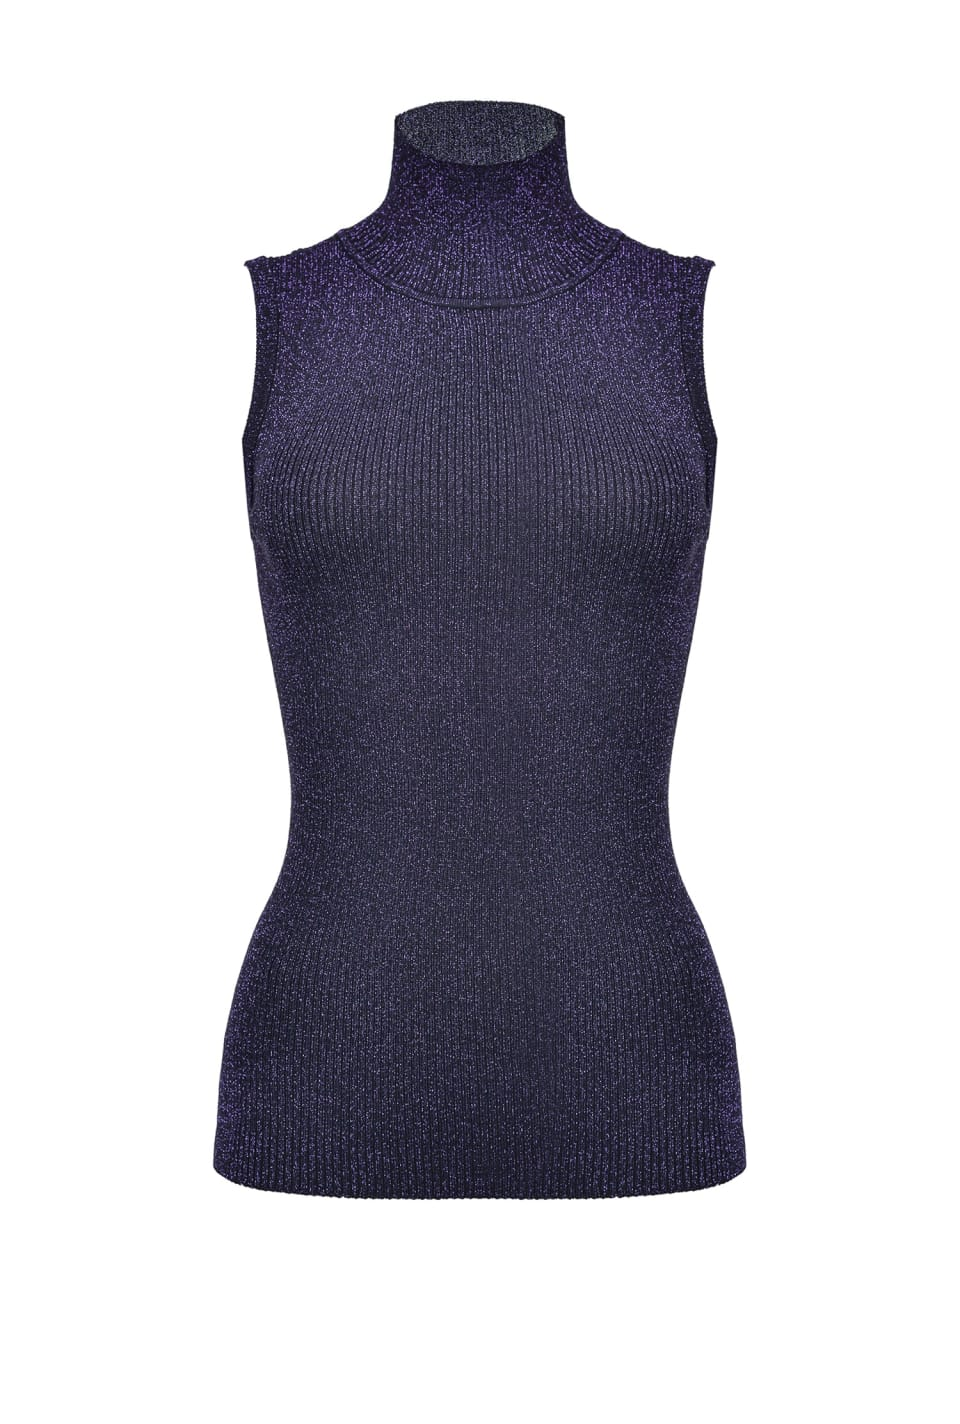 Sleeveless turtleneck in lurex - Pinko